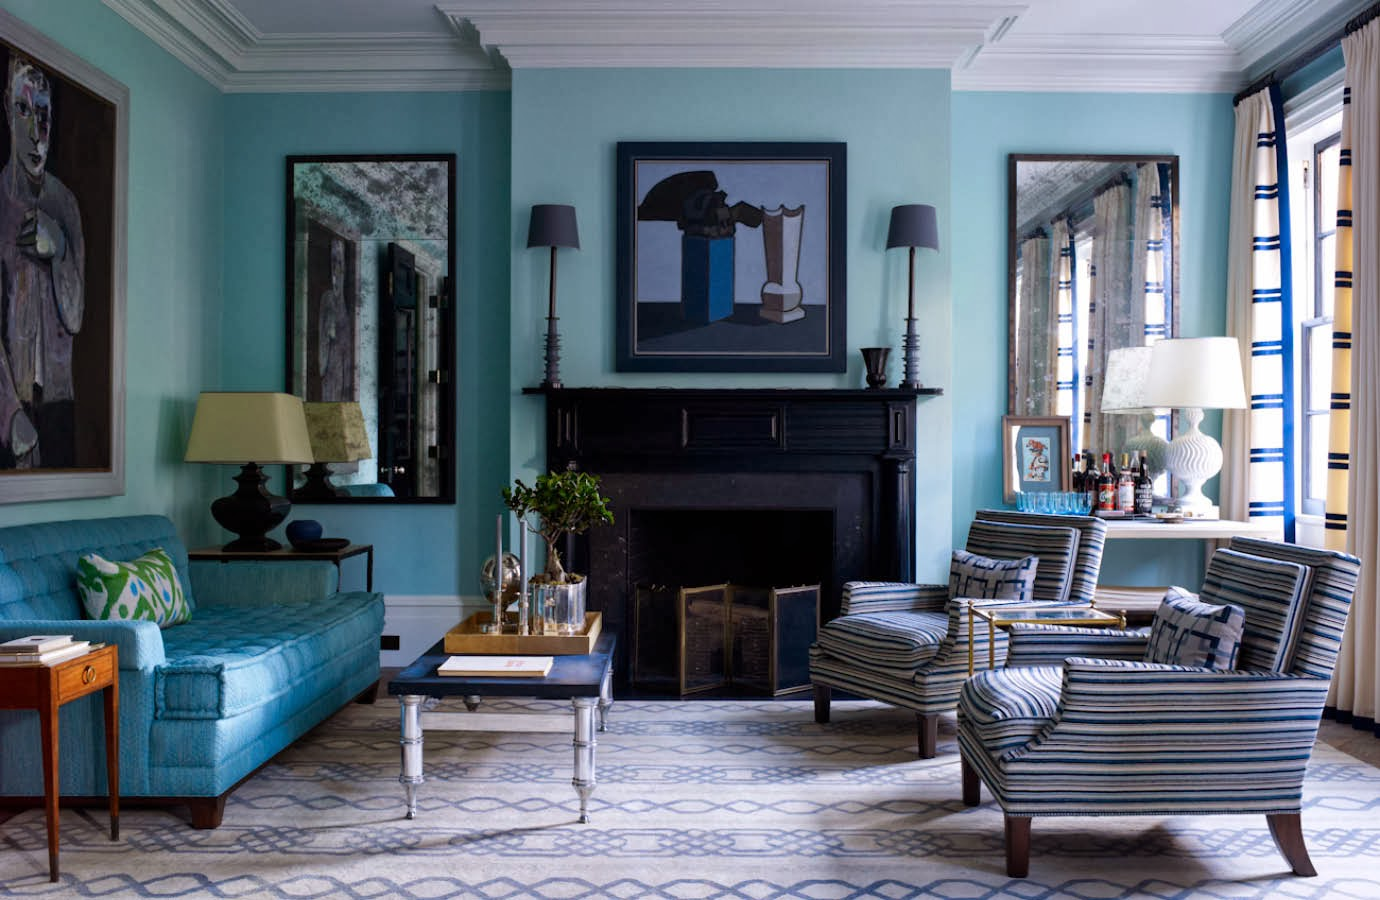 Living Room With Bold Turquoise Walls Pictures To Pin On Pinterest